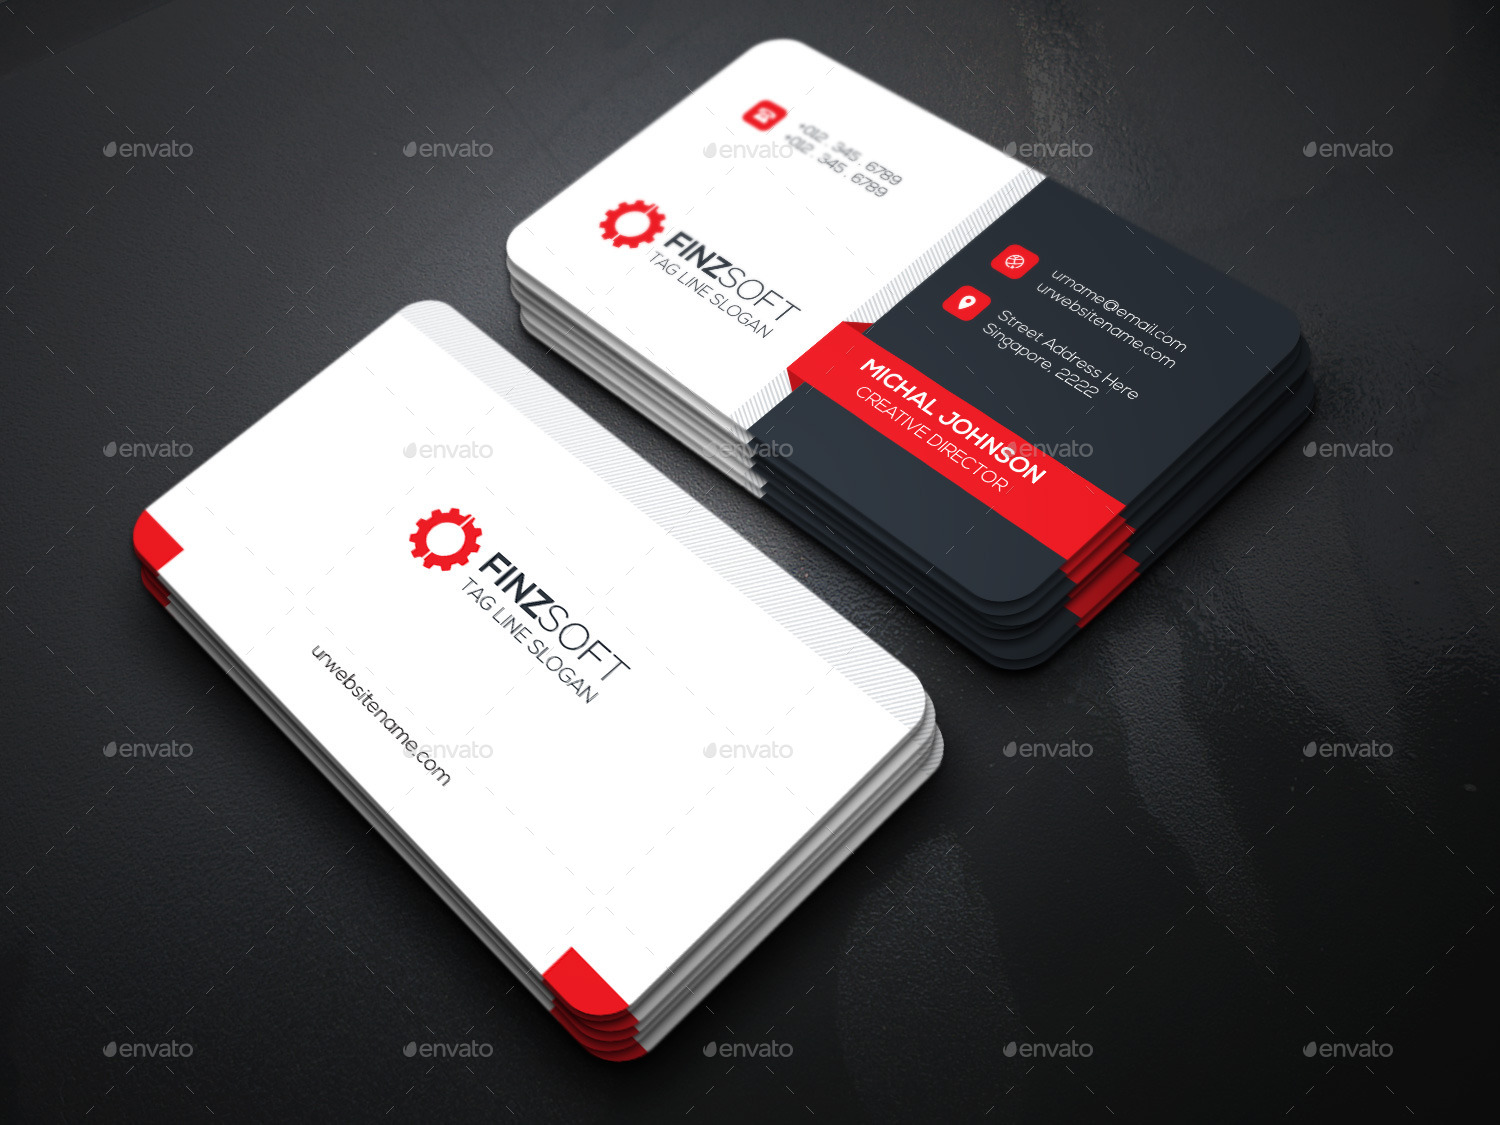 Technology Business Card Templates Image collections - Business ...